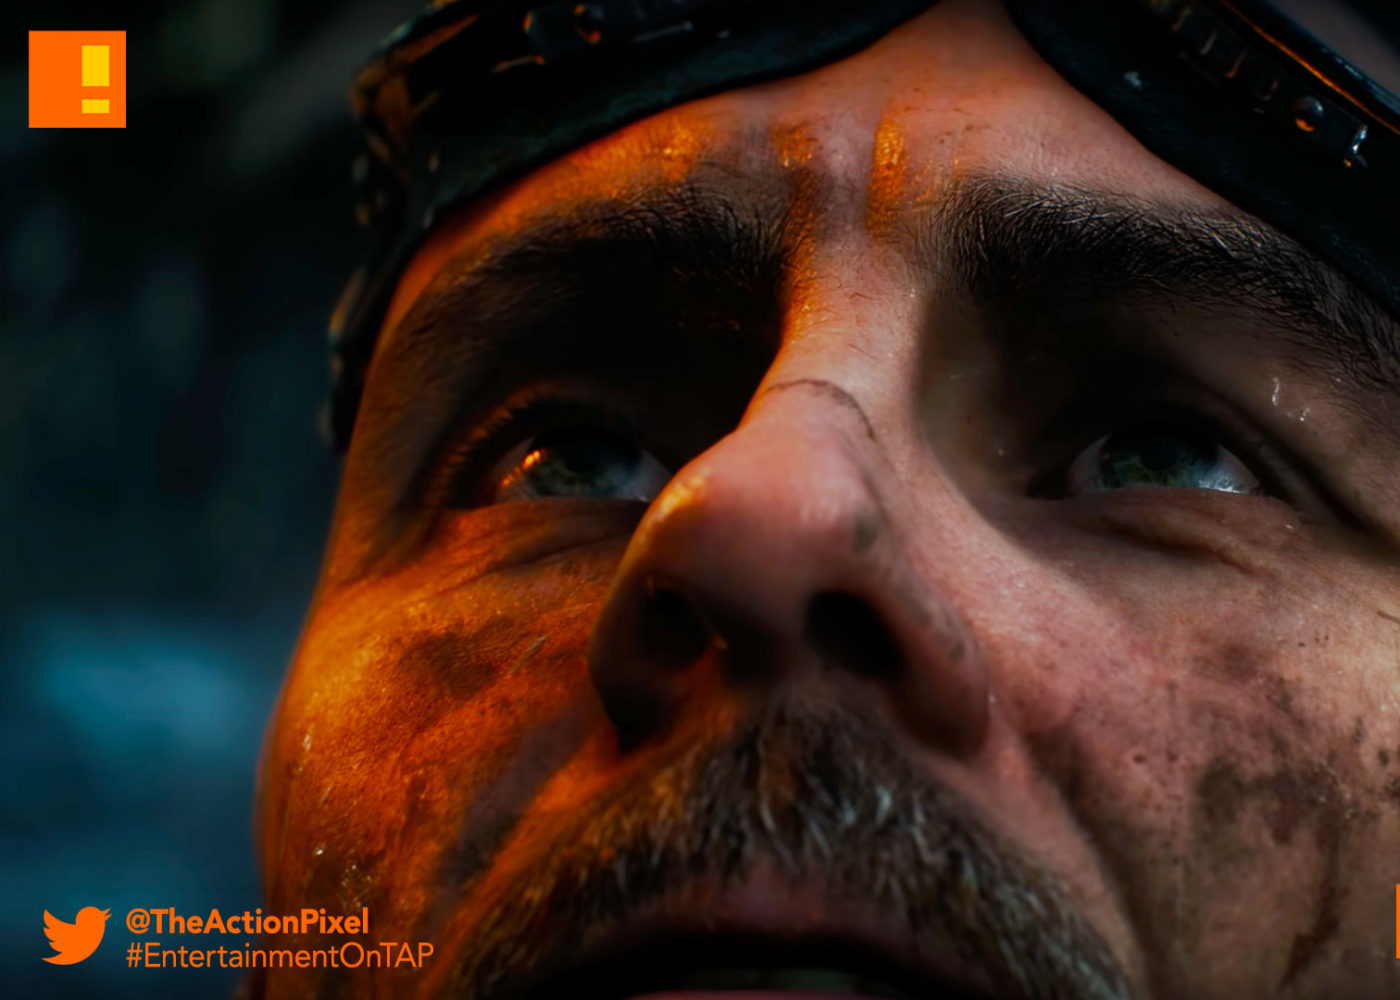 multiplayer, battlefield 5, battlefield v, the action pixel, ea, ea dice, dice, electronic arts, the action pixel, entertainment on tap,battlefield 5,